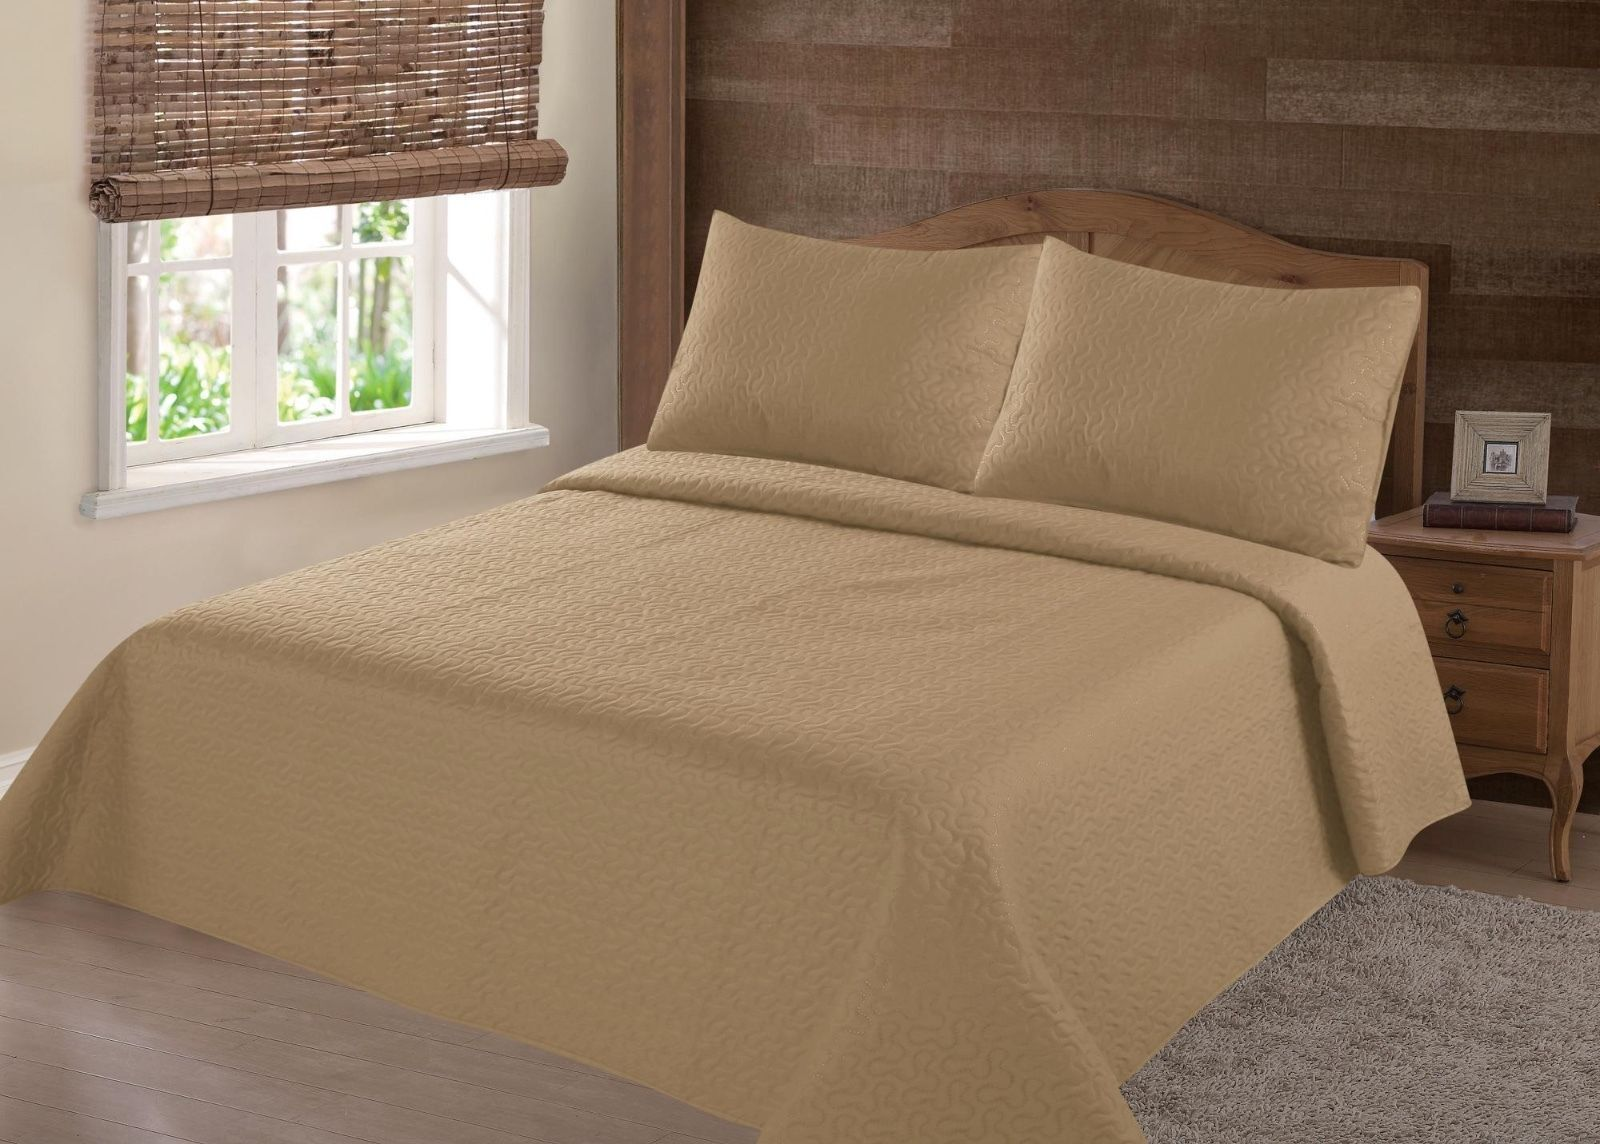 MIDWEST GOLD NENA SOLID QUILT BEDDING BEDSPREAD COVERLET PIL